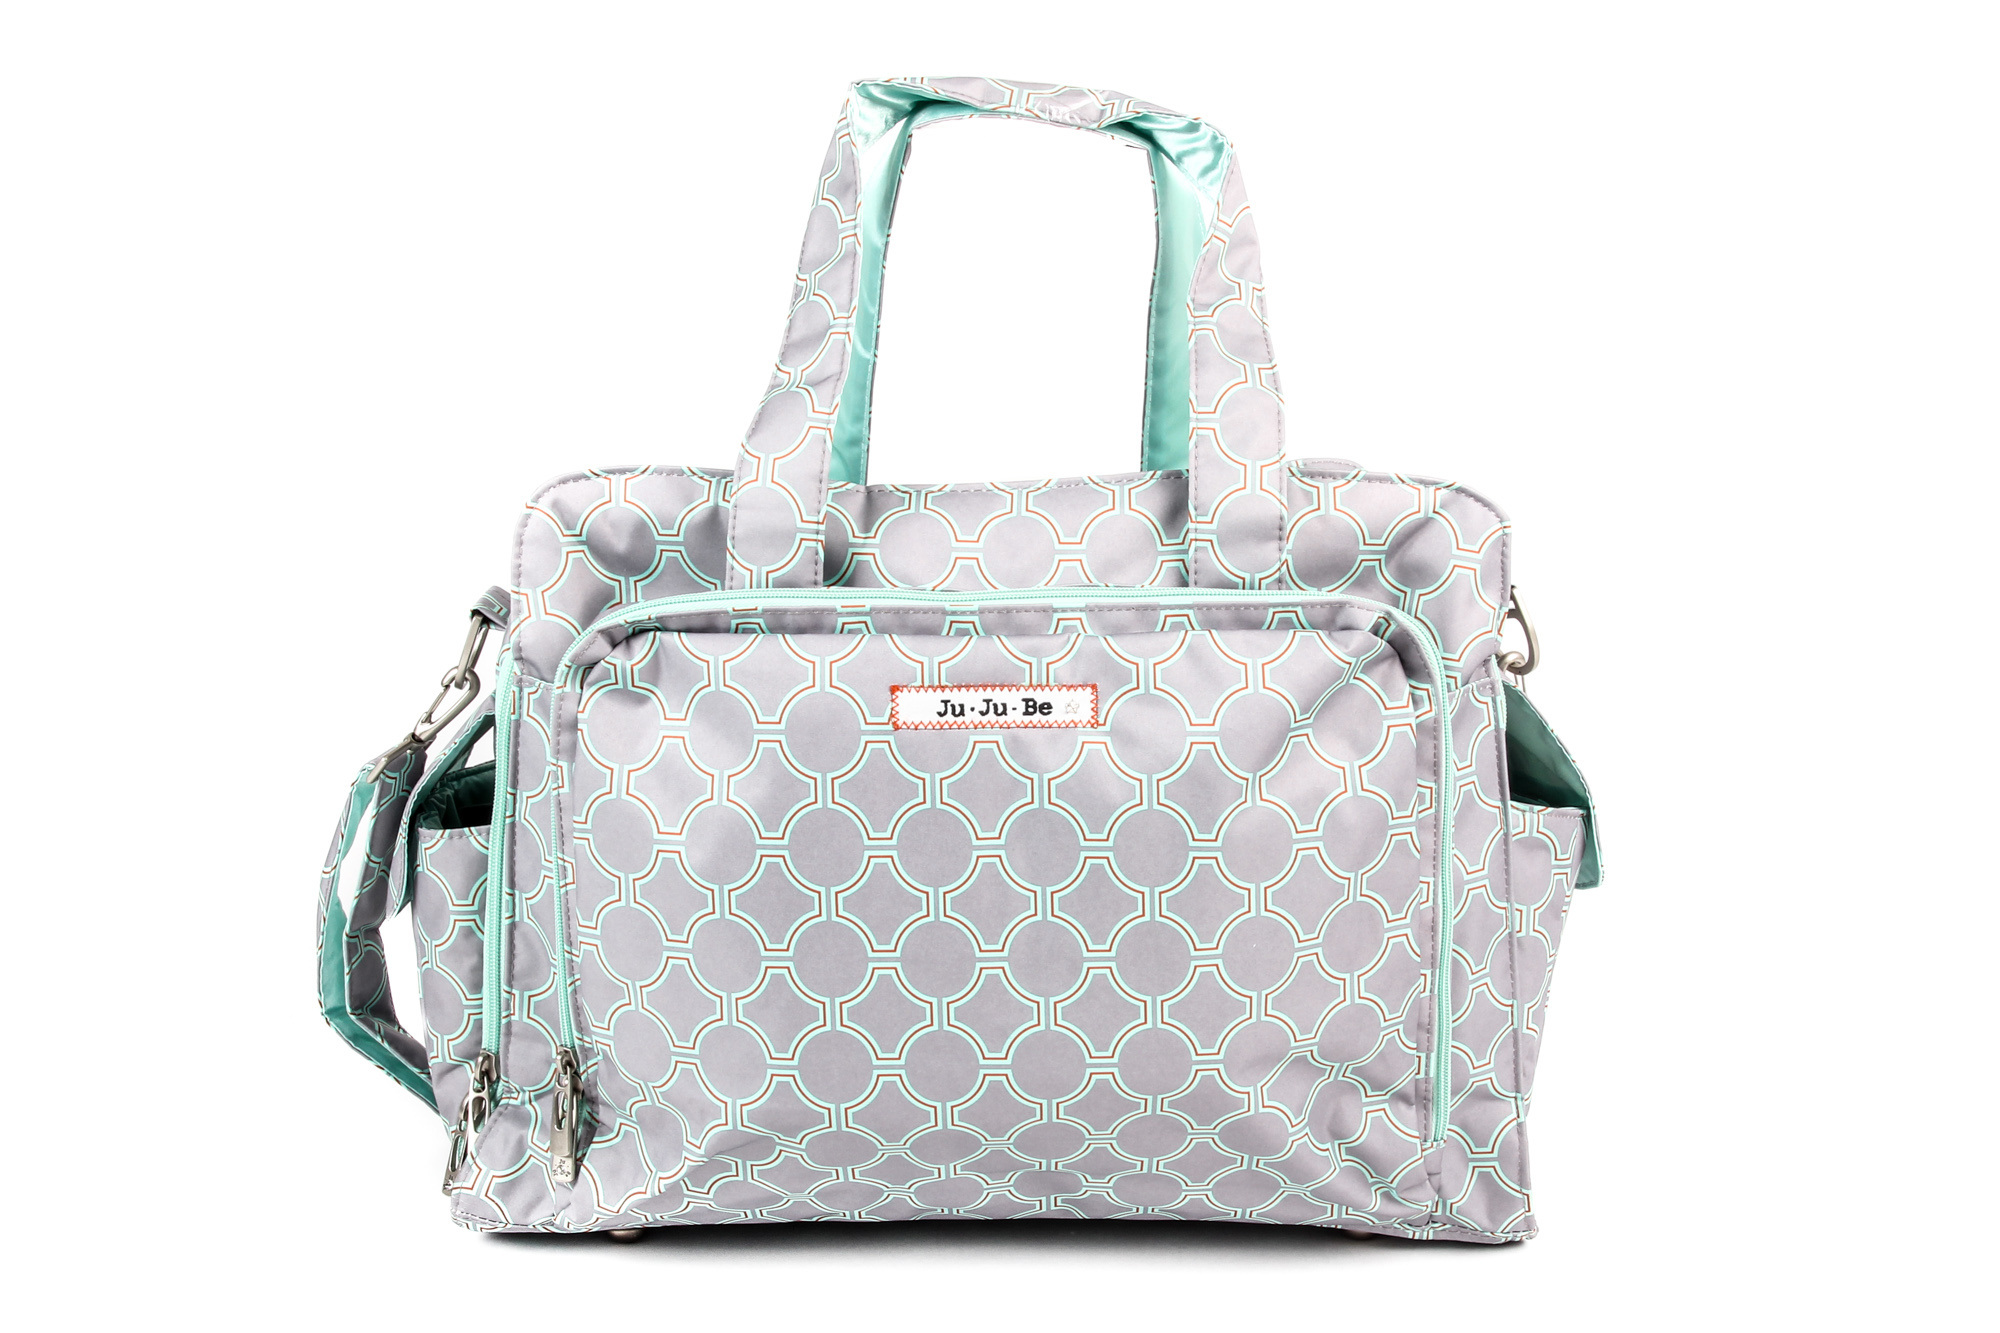 Jujube Early Sunrise Bag in Early Sunrise